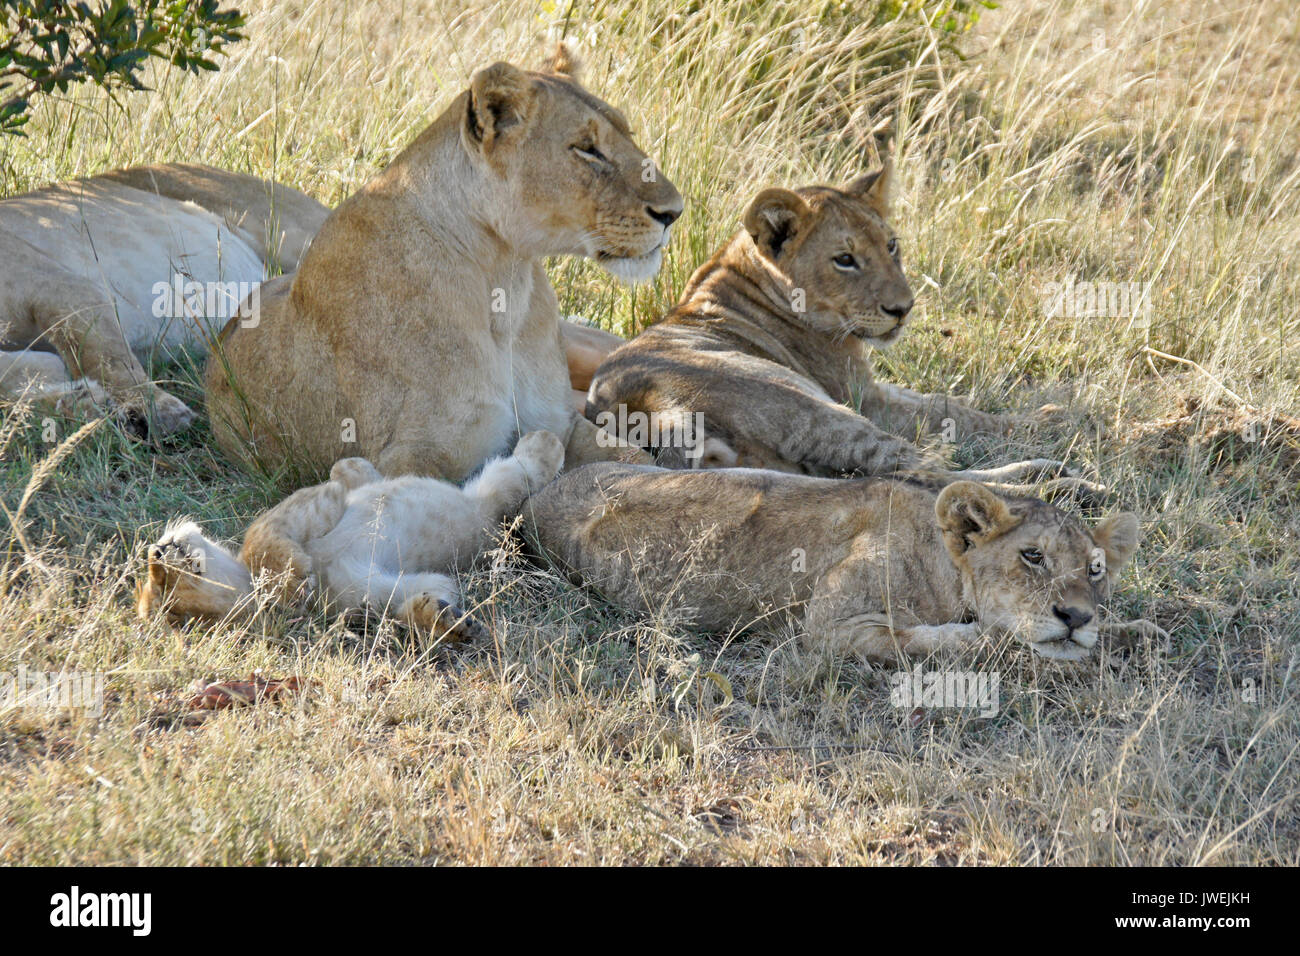 Lions resting in shade after nursing session, Masai Mara Game Reserve, Kenya - Stock Image